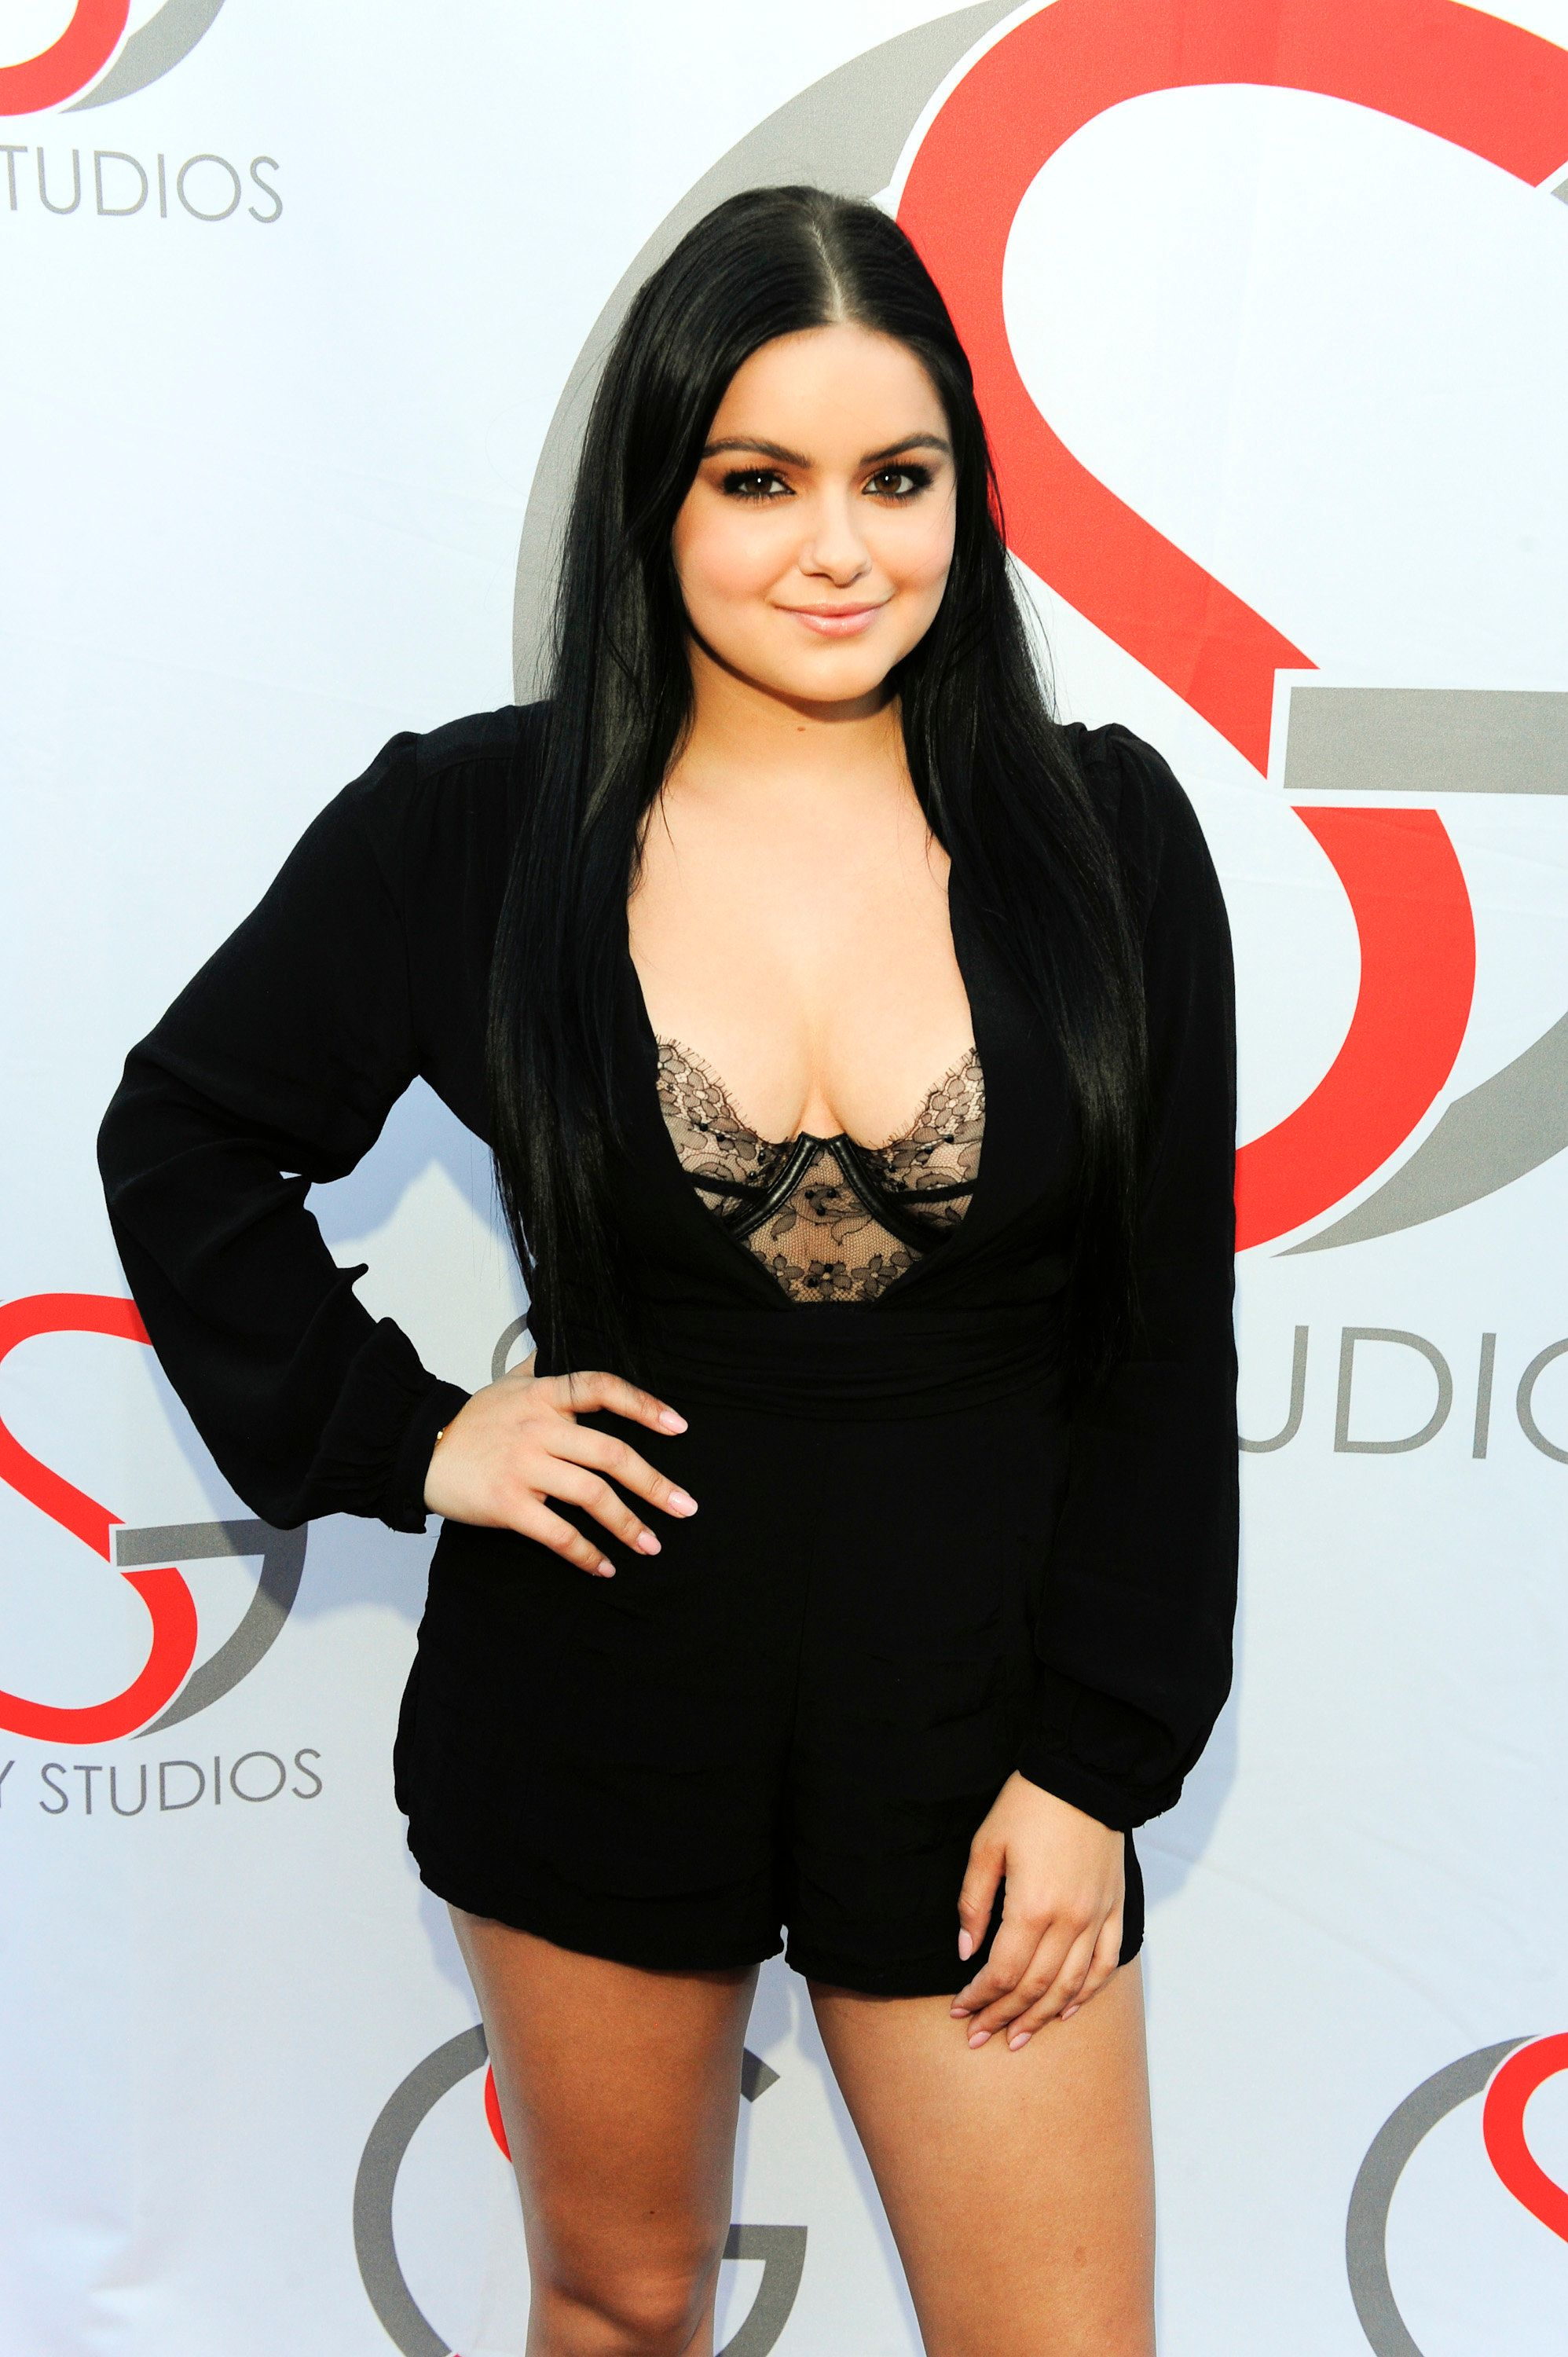 LOS ANGELES, CA - OCTOBER-8: Ariel Winter attends the Gray Studios Oscars 2016 Film Screenings Night 1 on October 8, 2016 in Los Angeles, California.  (Photo by Amy Graves/WireImage)